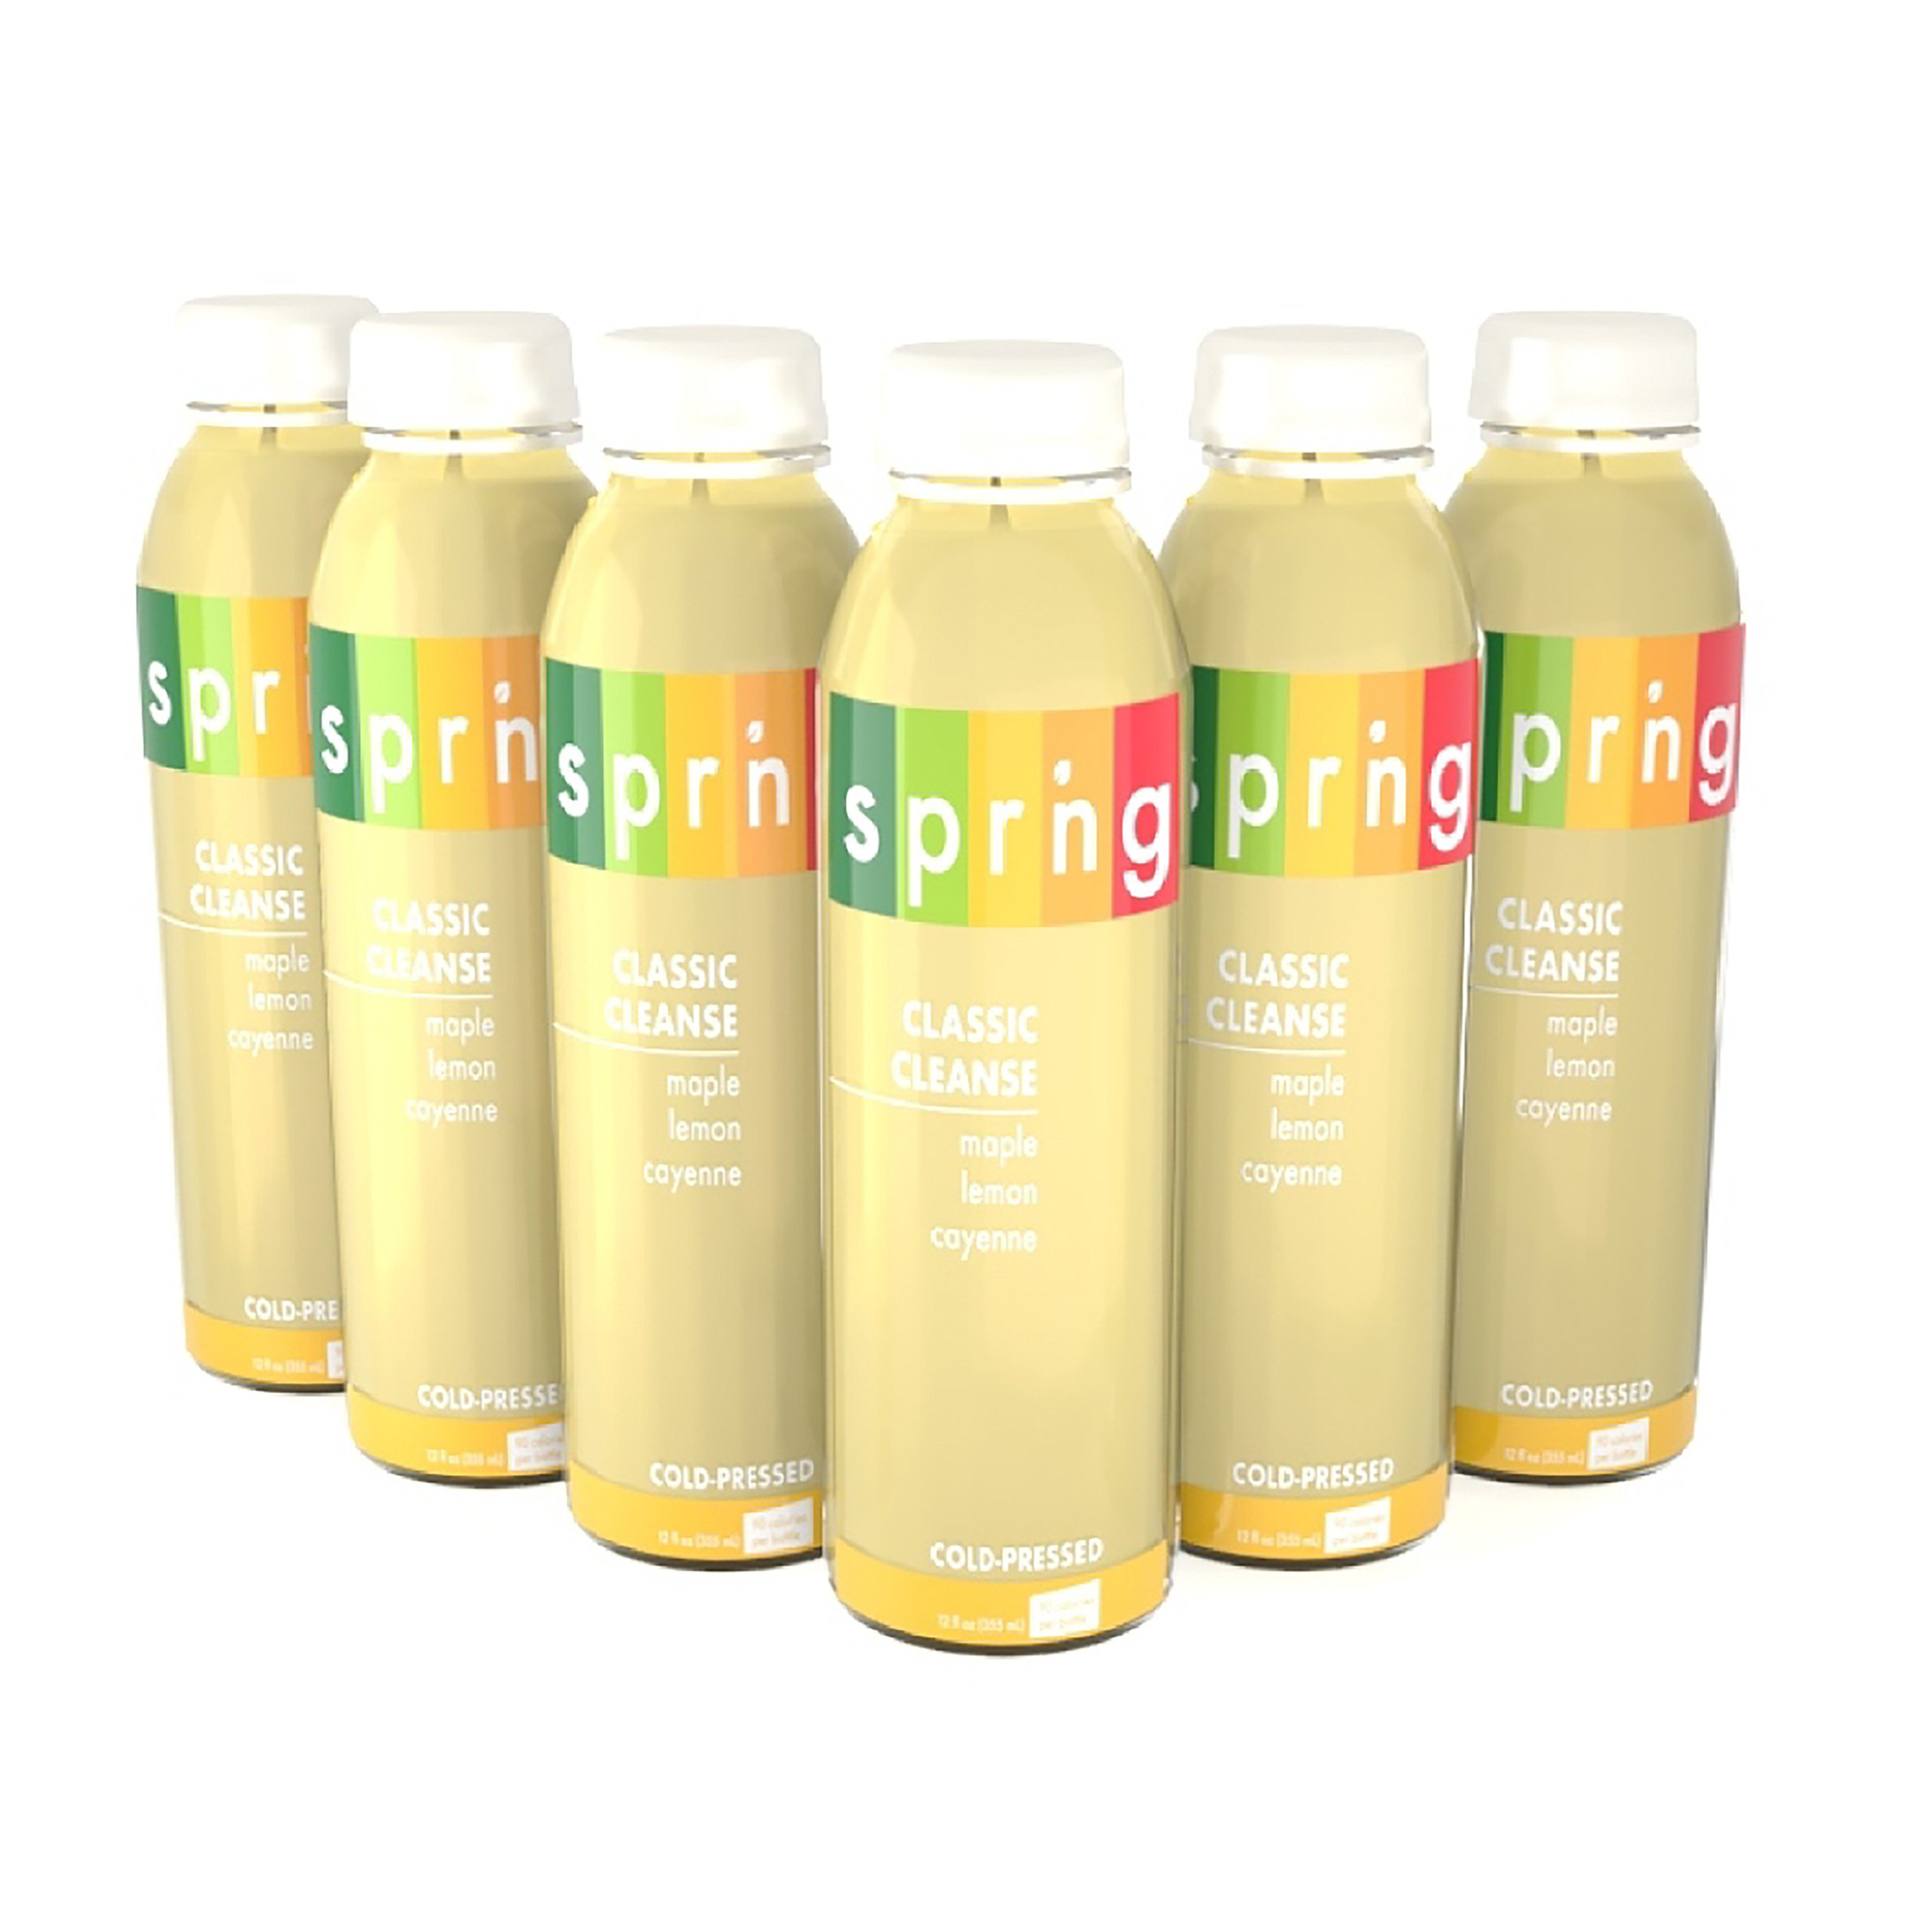 Amazon suja organic cold pressed juice 3 day fresh start pack classic cleanse by sprng premium juices master cleanse cold pressed maple lemonade cayenne malvernweather Choice Image